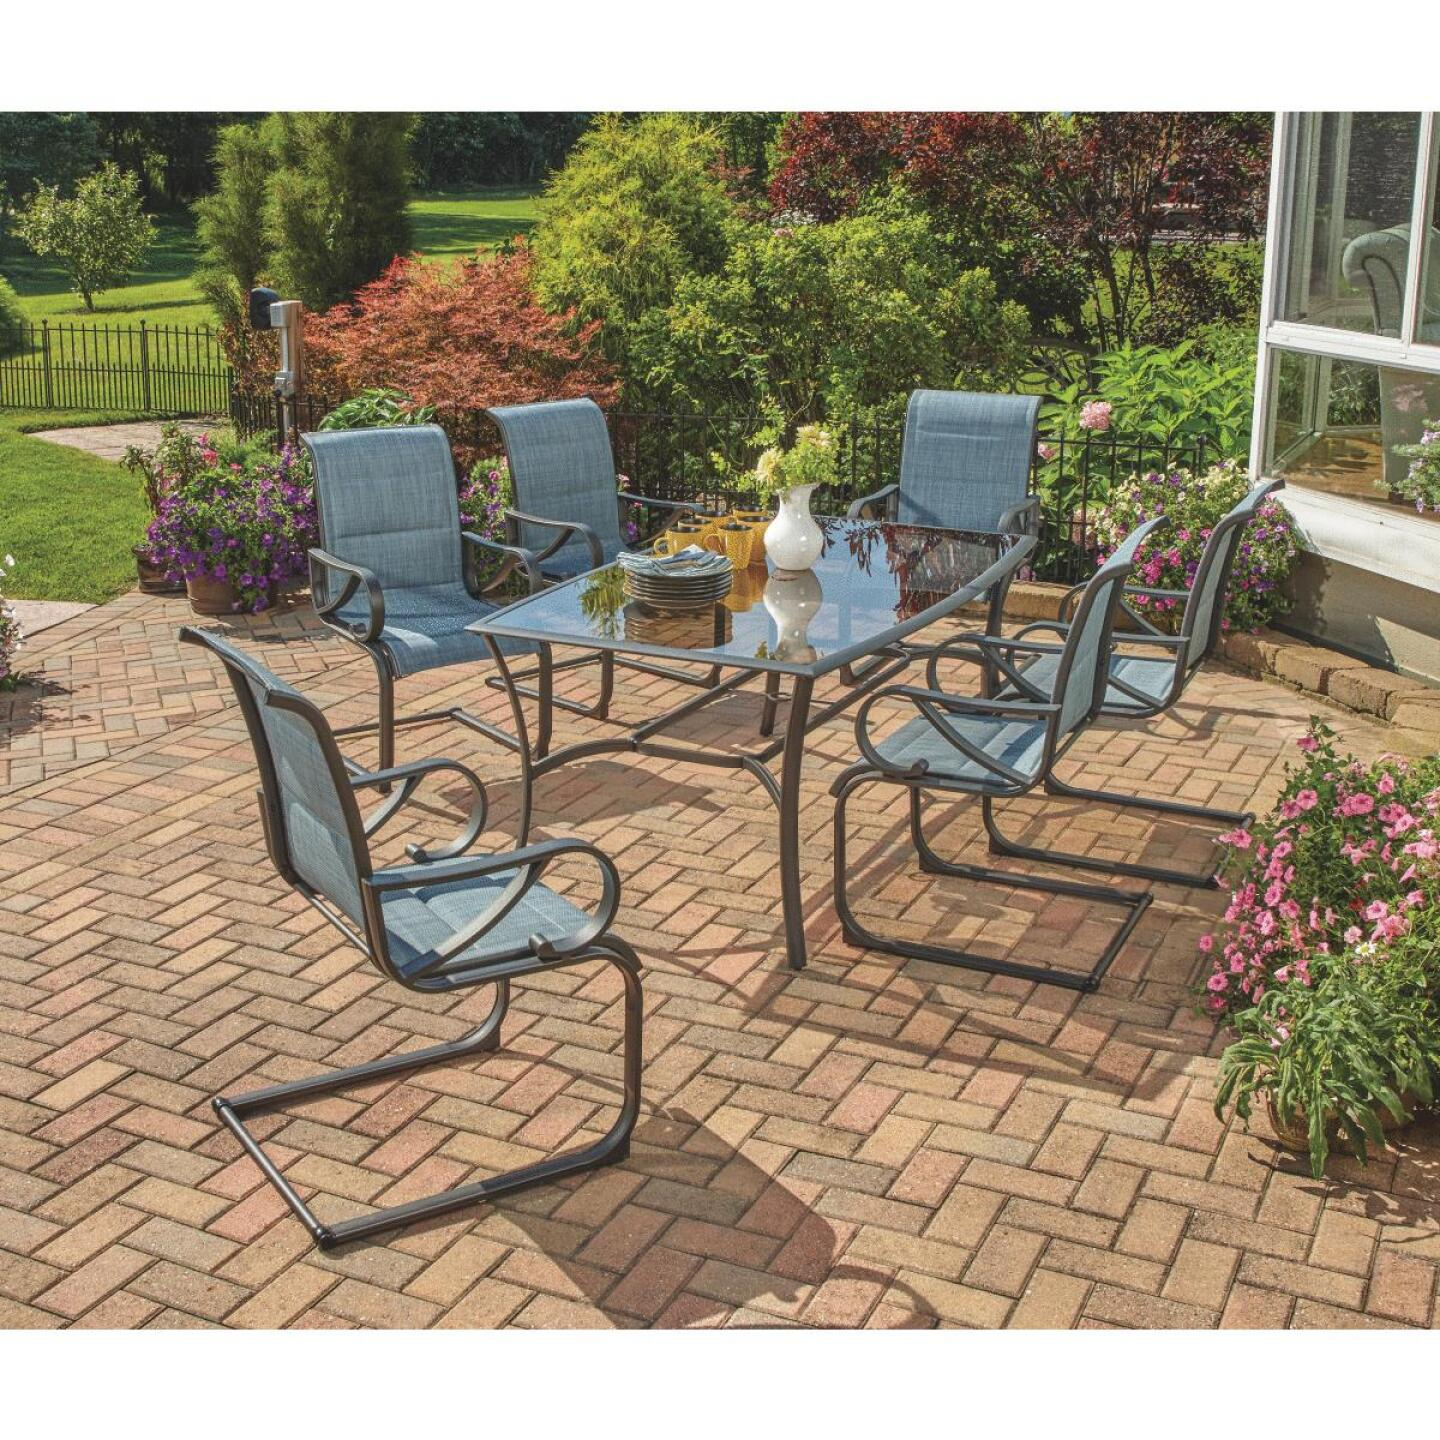 Outdoor Expressions Brookdale 7-Piece Dining Set Image 8